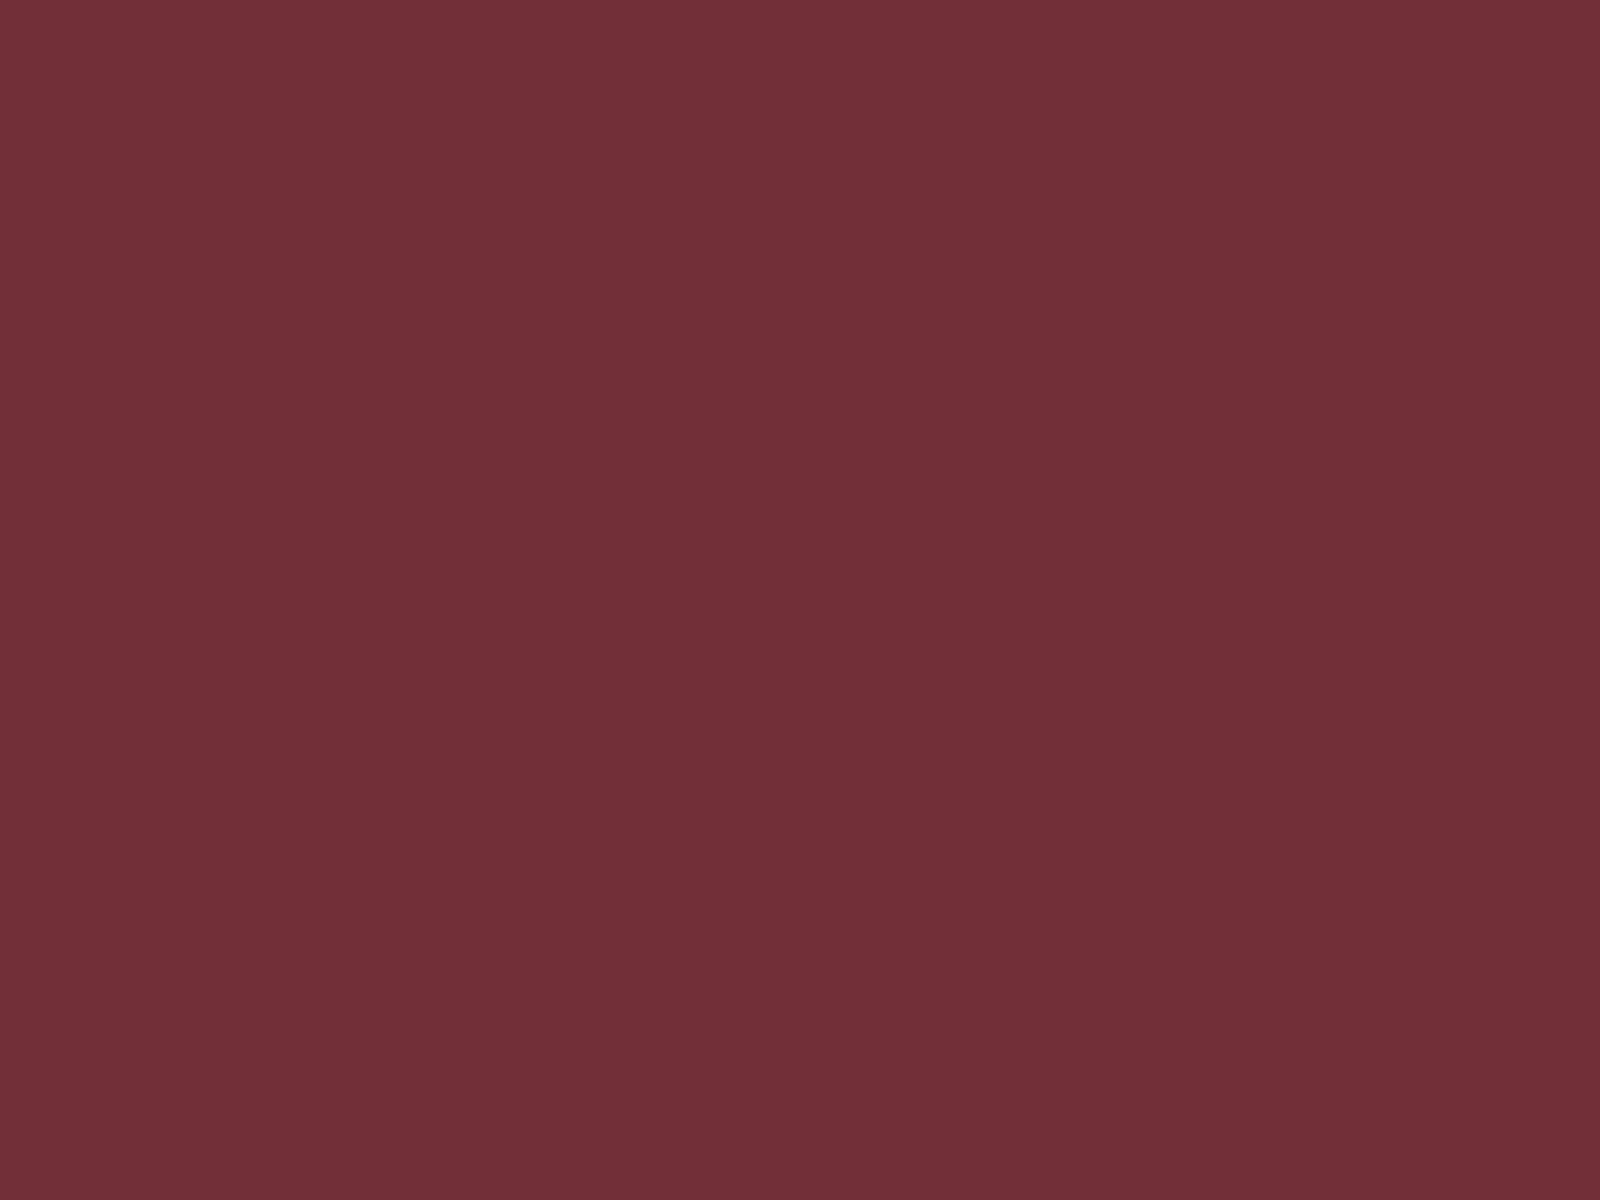 1600x1200 Wine Solid Color Background